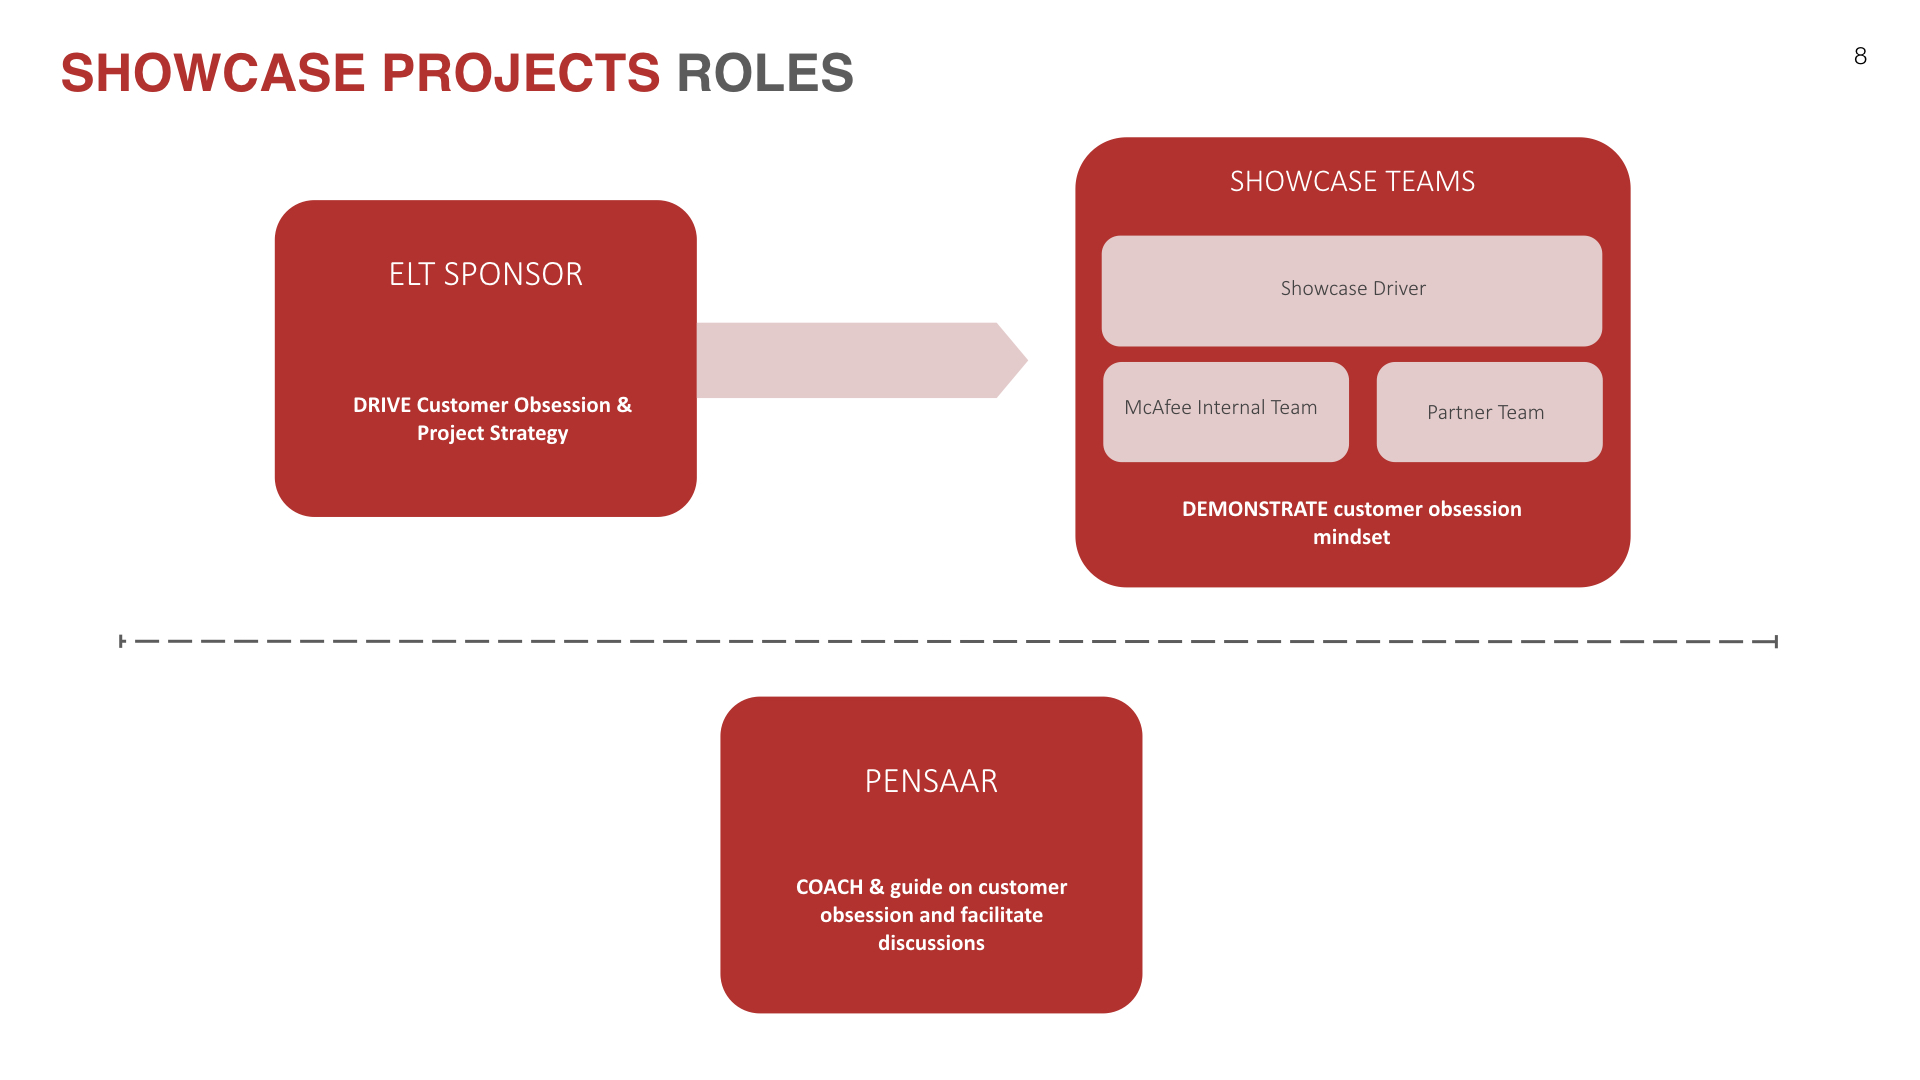 Showcase project roles.jpeg